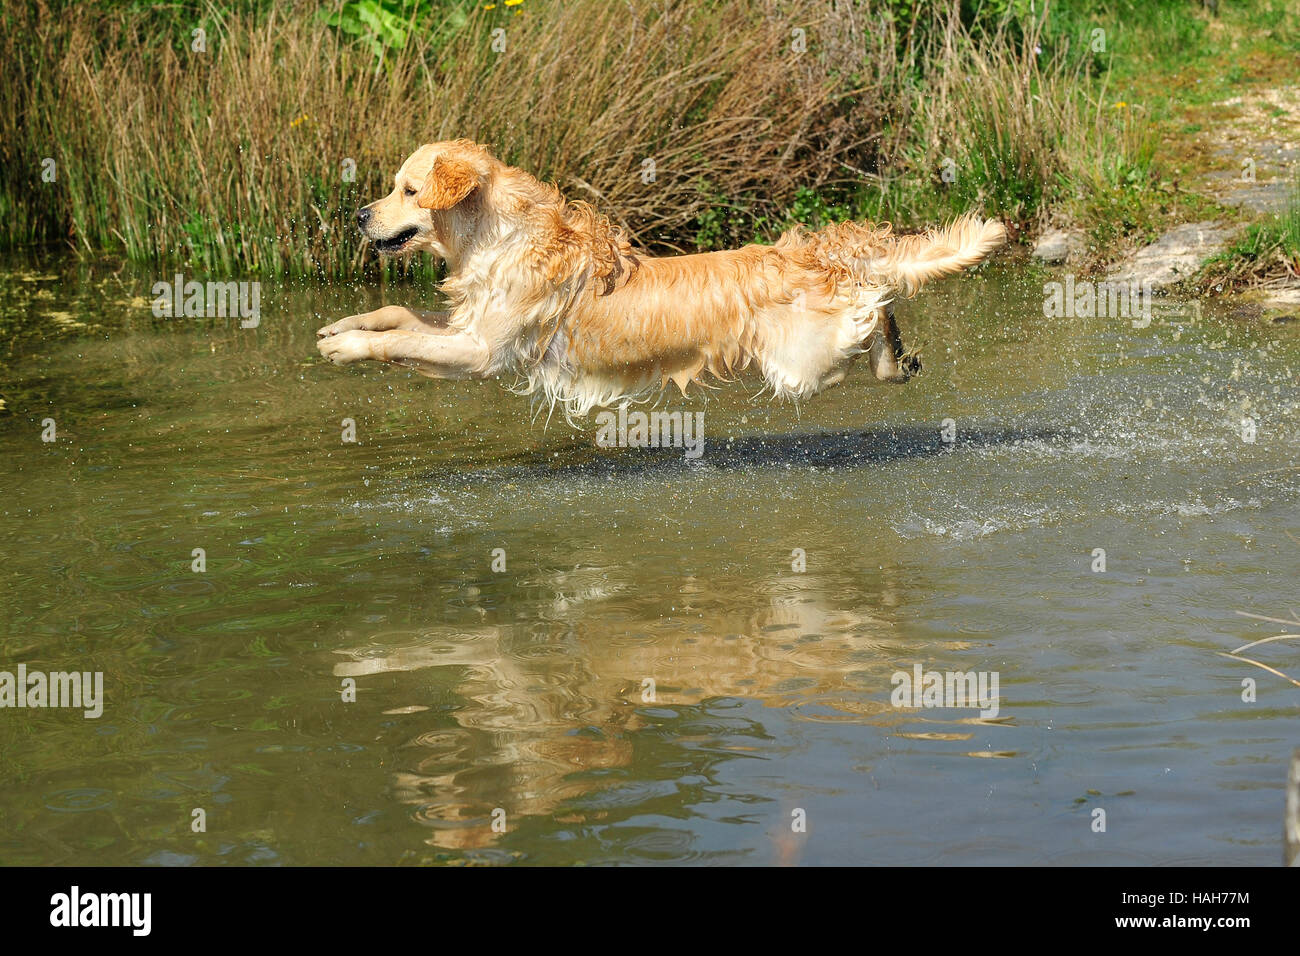 golden retriever leaping into a lake - Stock Image